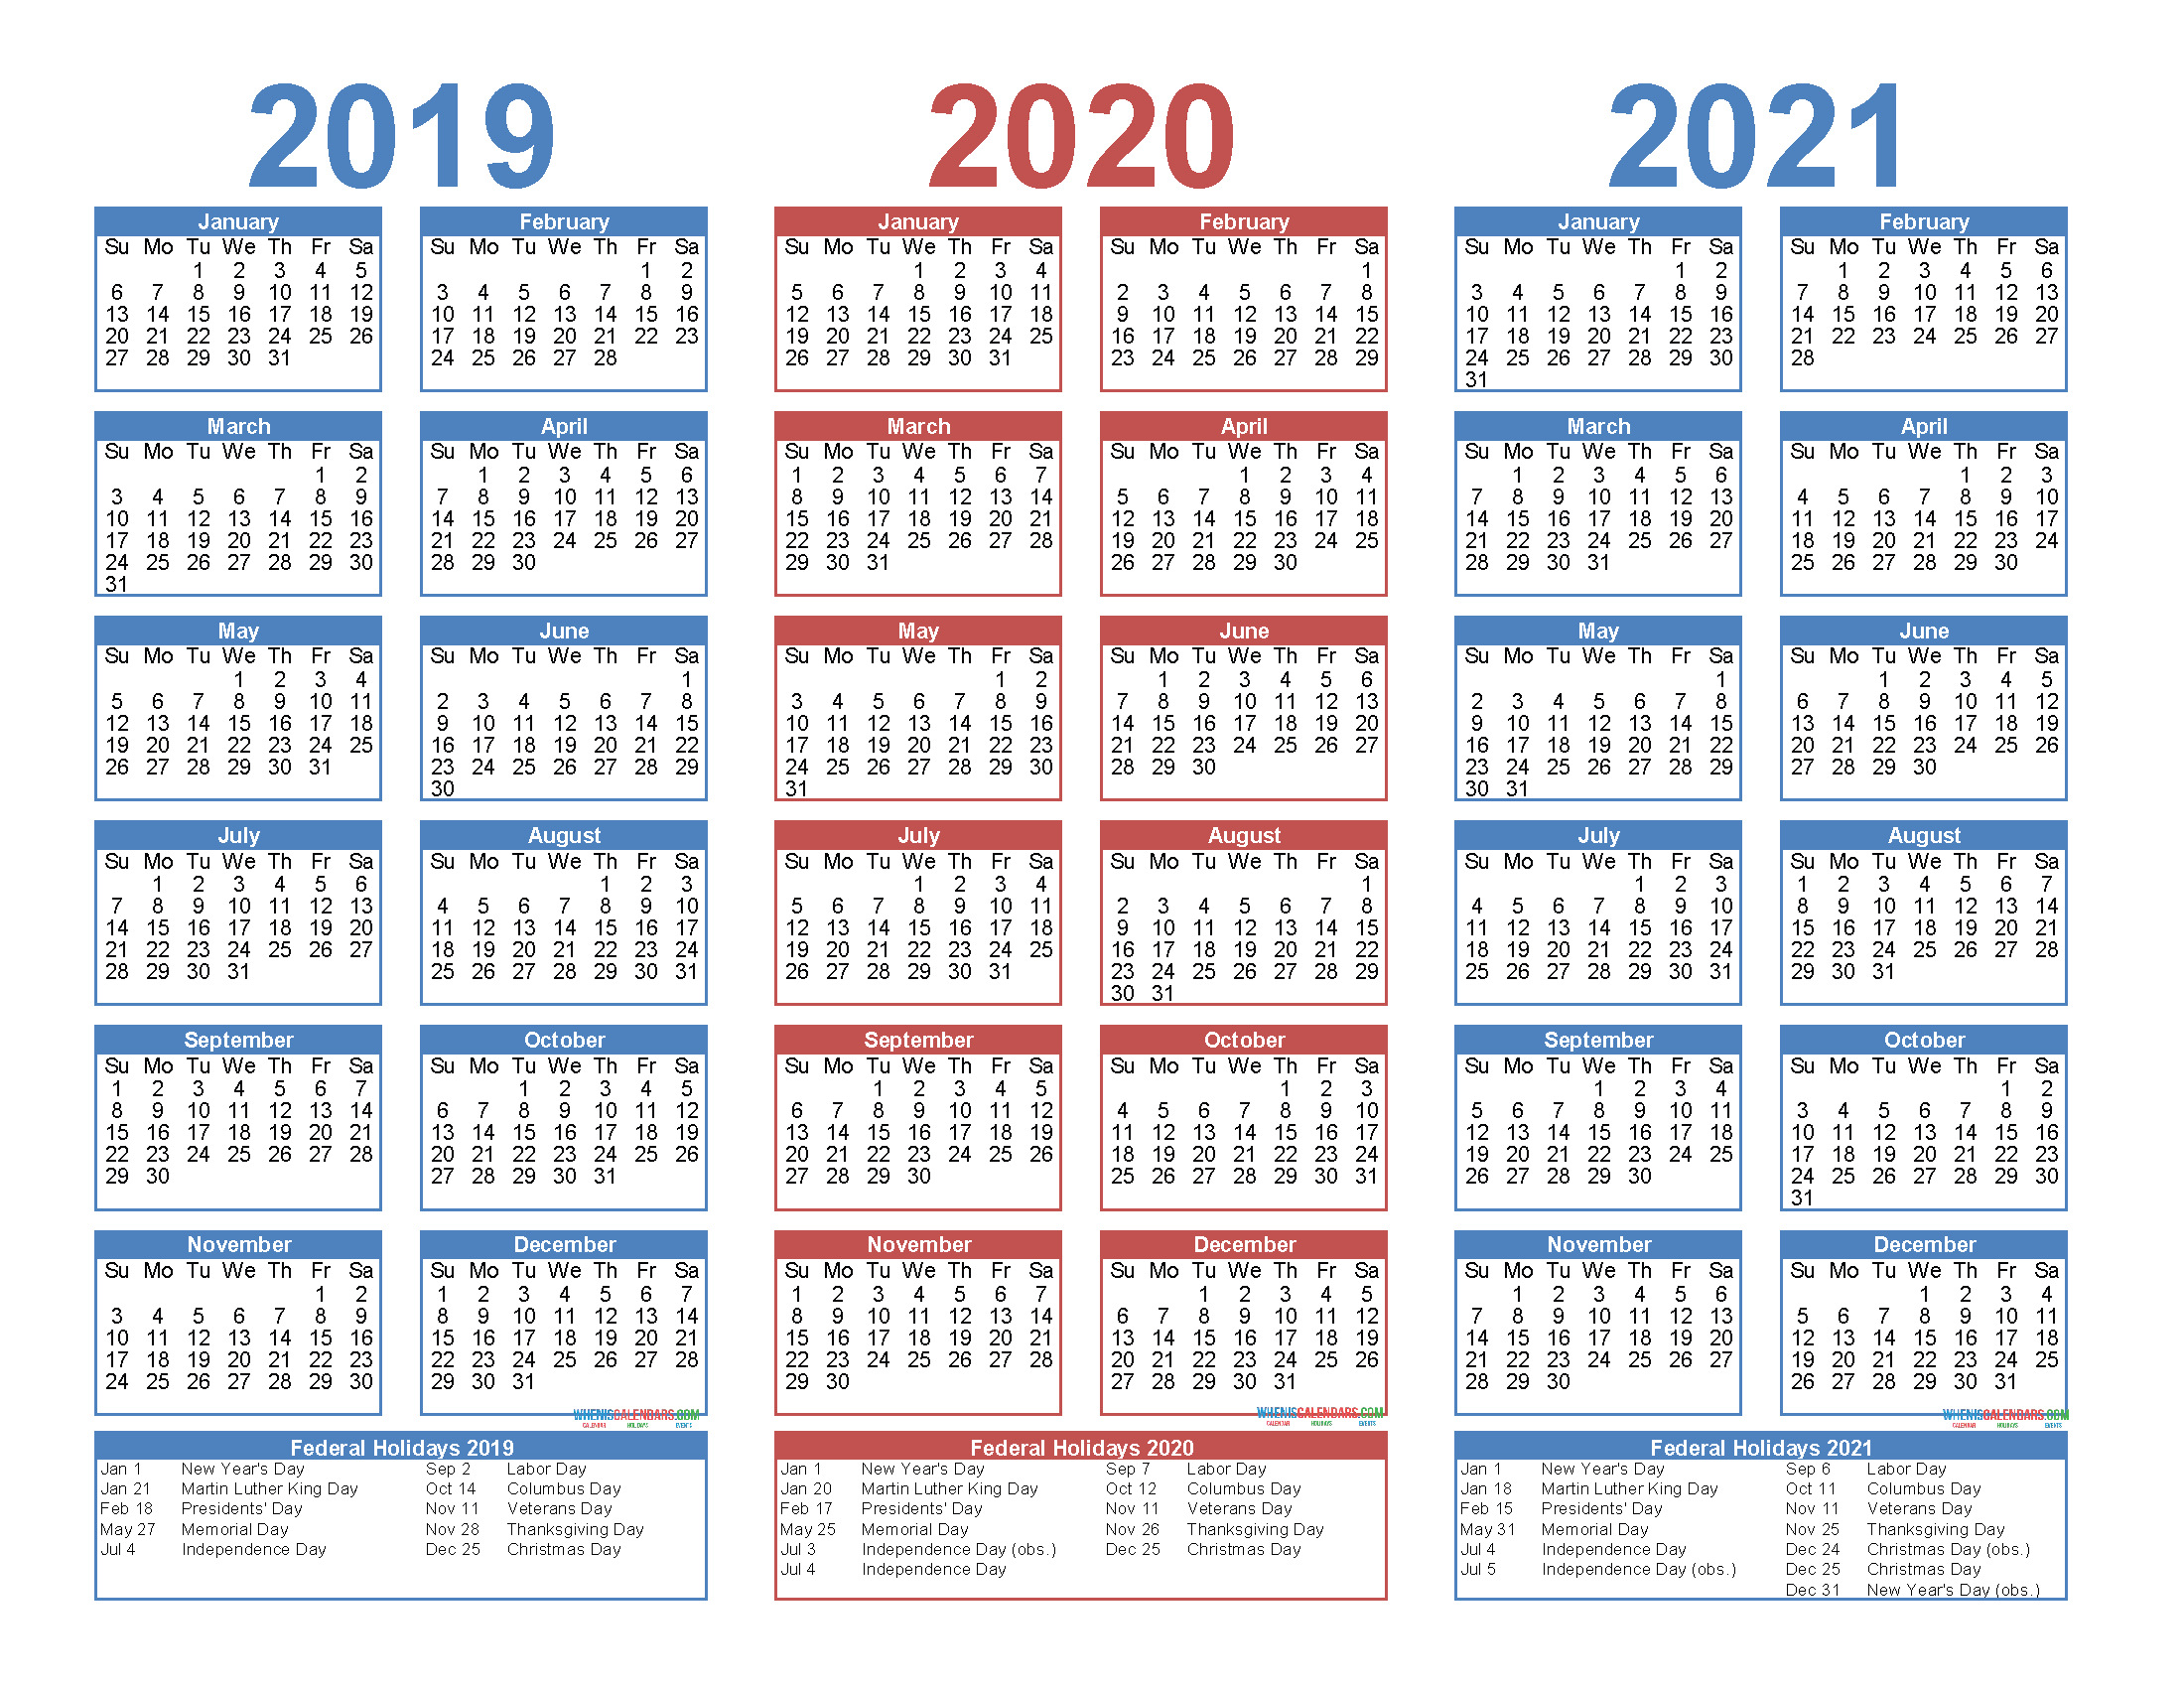 2019 To 2021 3 Year Calendar Printable Free Pdf, Word, Image in 3 Year Calendar Printable